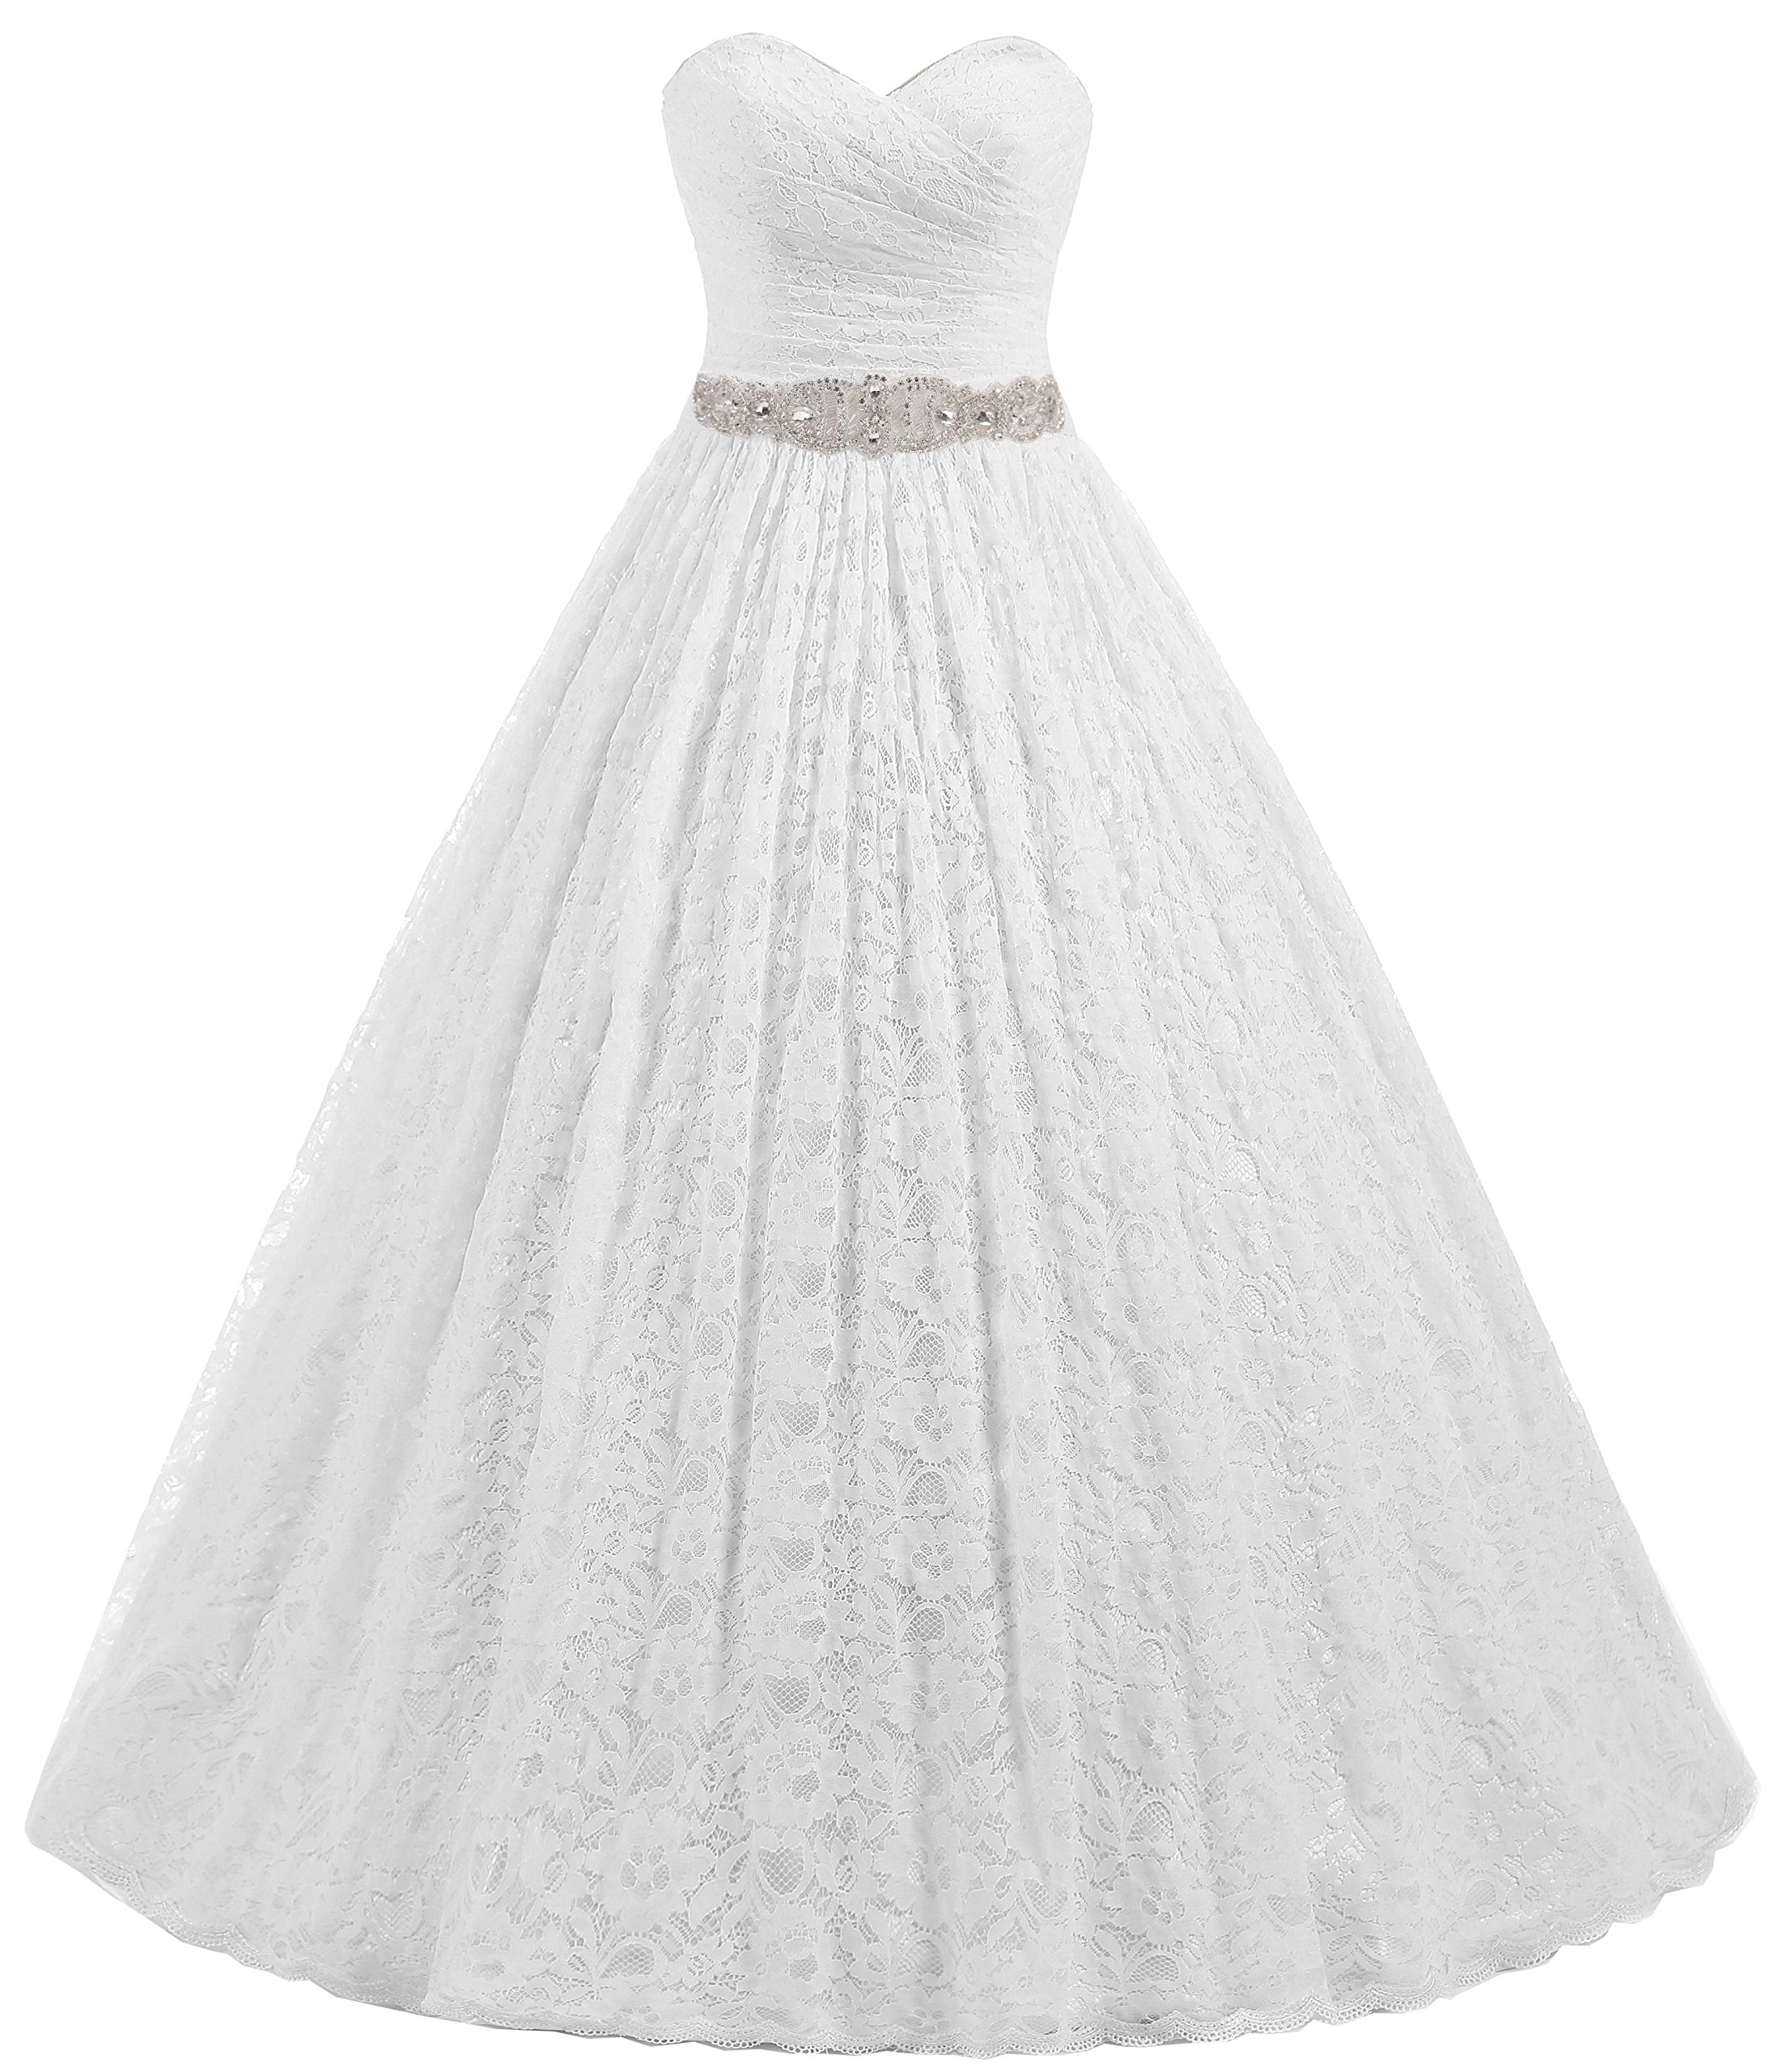 Beautyprom Women's Sweetheart Ball Gown Lace Bridal Wedding Dresses (US14, Ivory) by Beautyprom